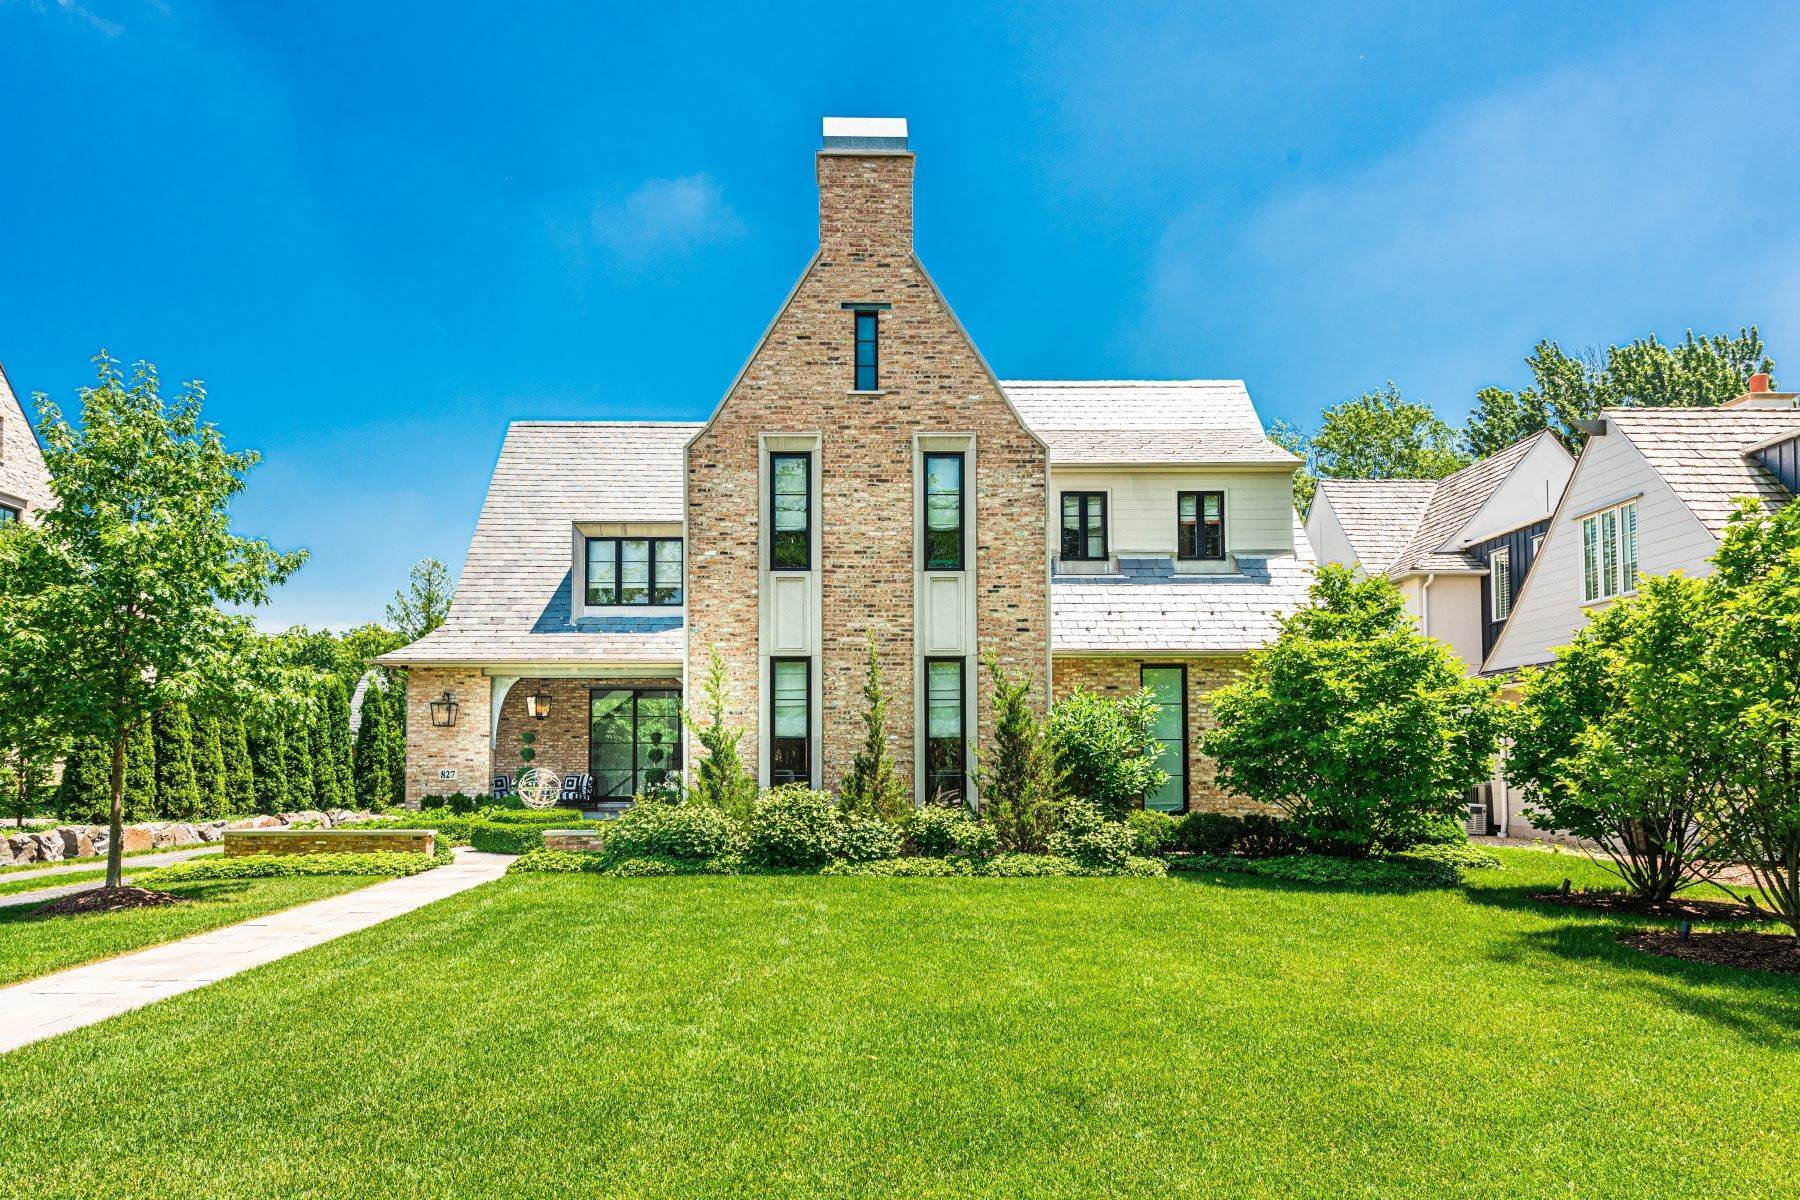 Single Family Homes for Sale at Bask In Luxury 827 S Oak Street Hinsdale, Illinois 60521 United States